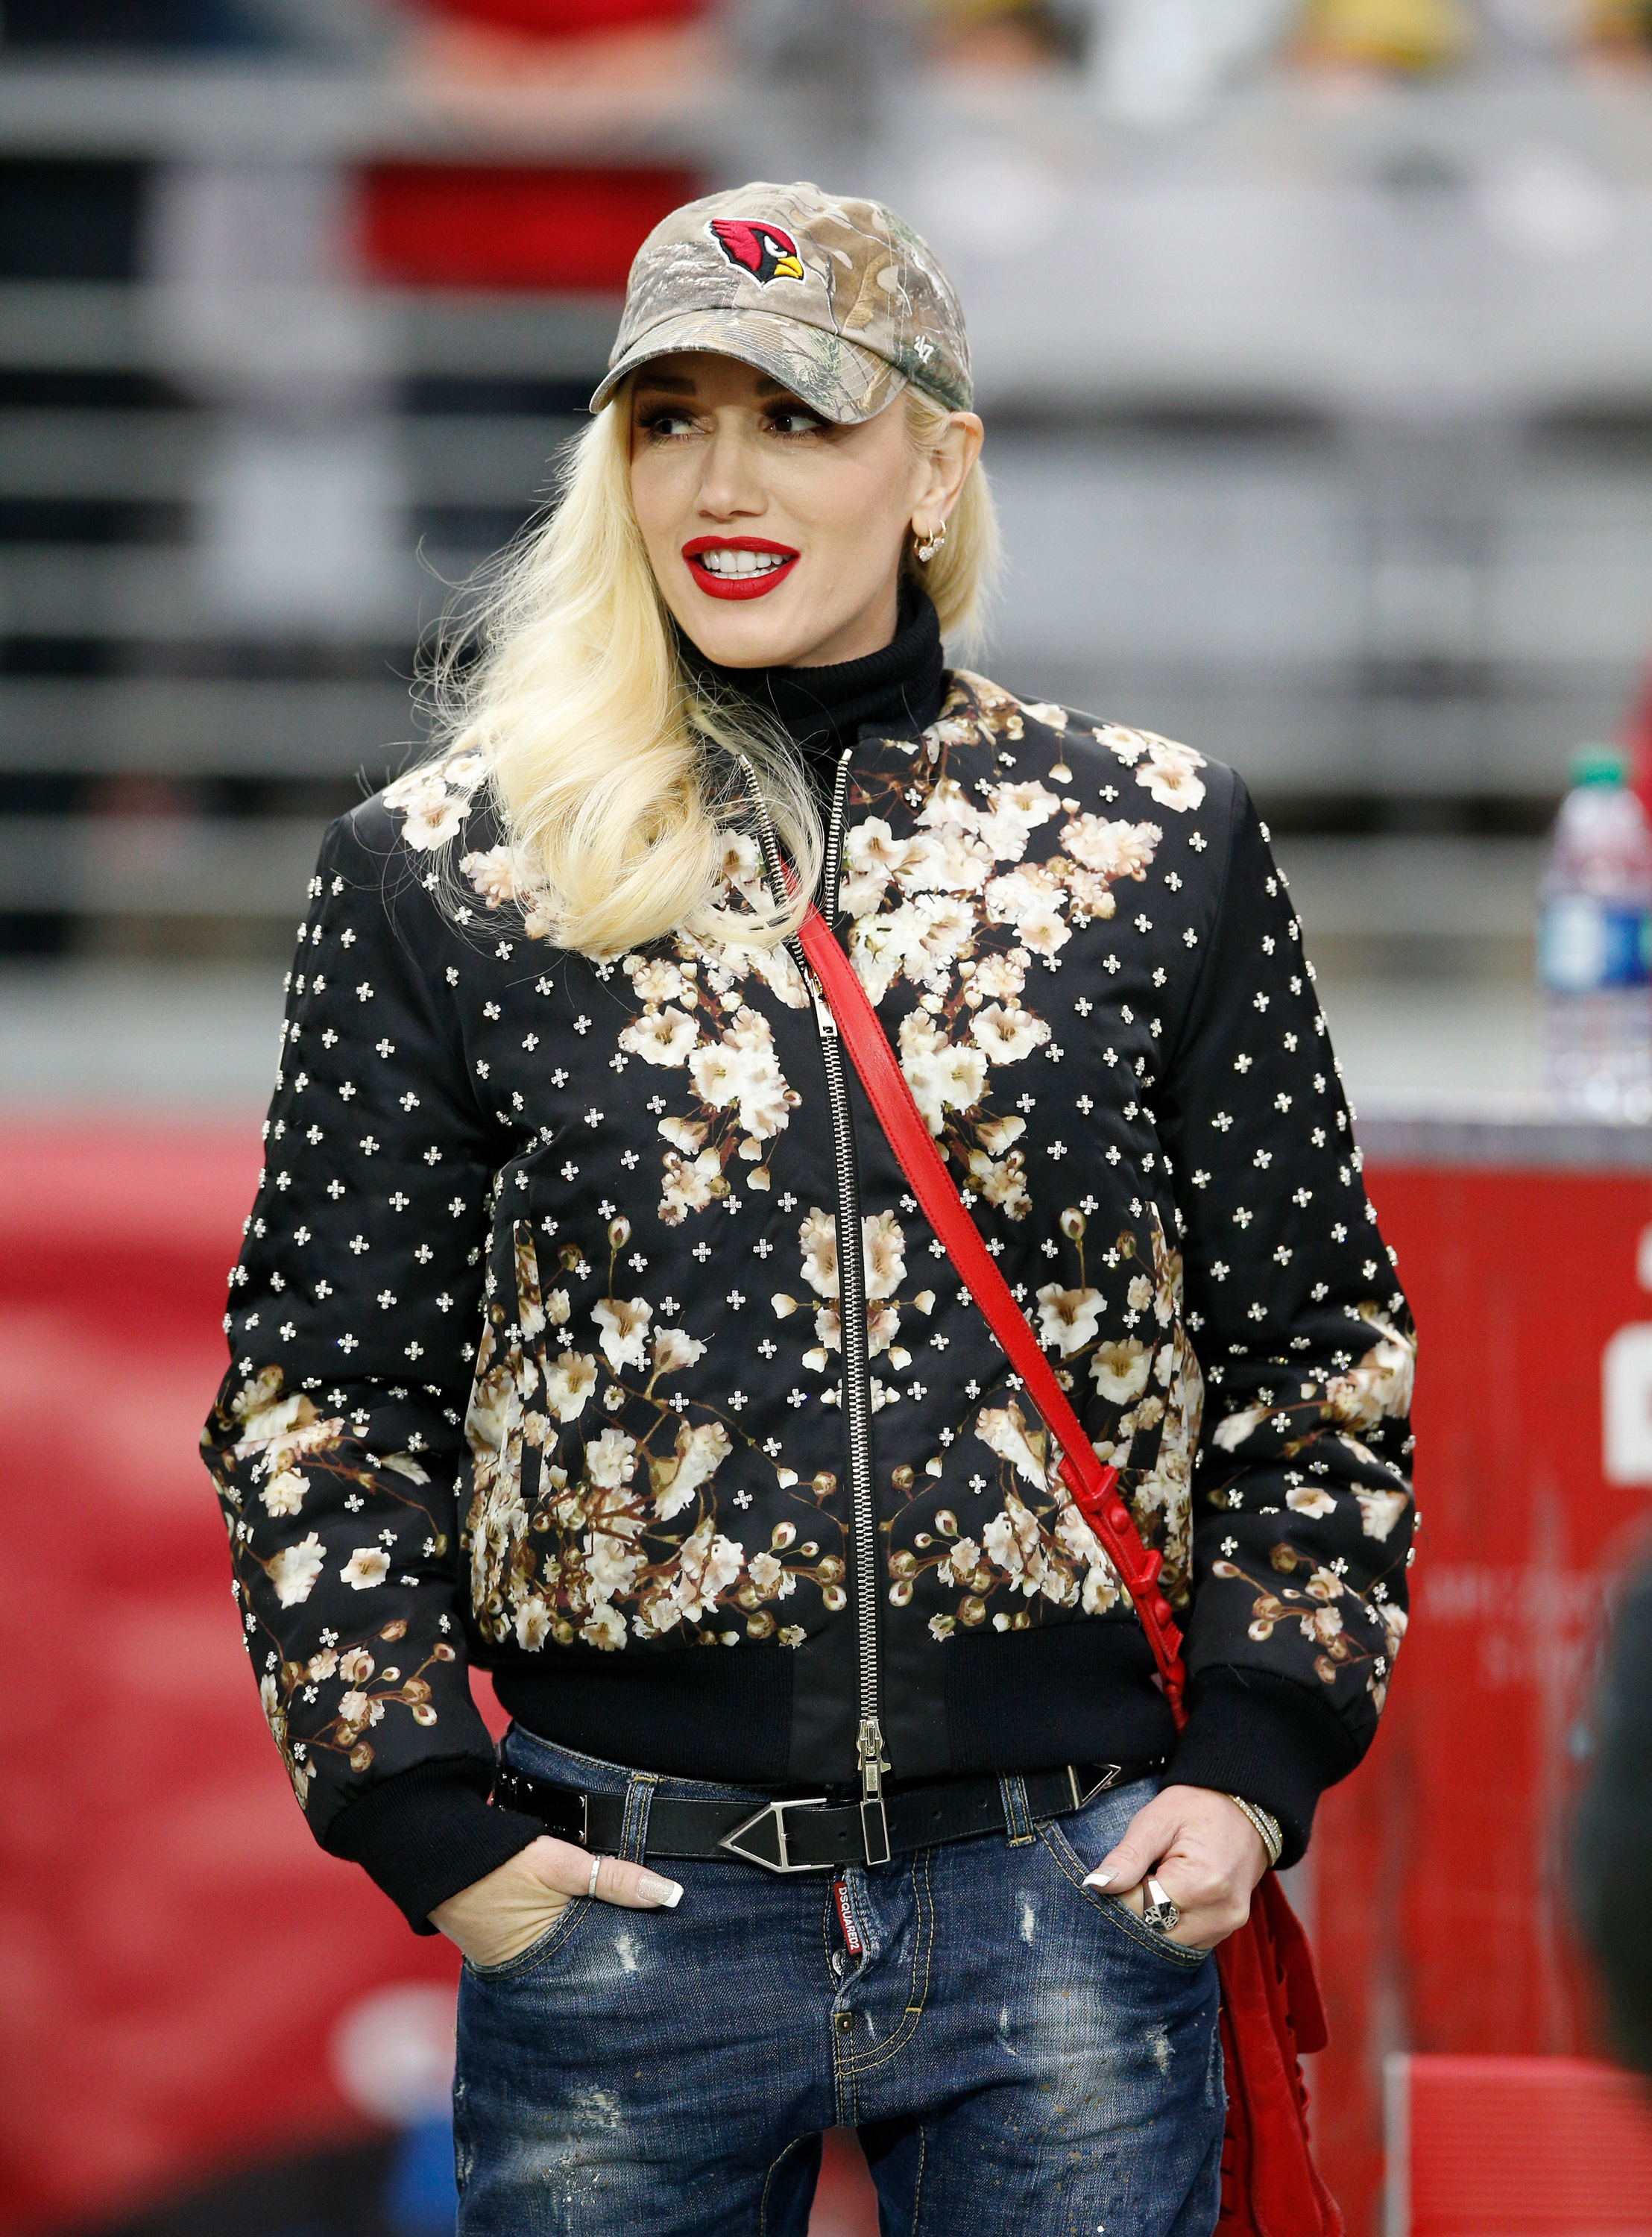 Gwen Stefani offers advice to young musicians